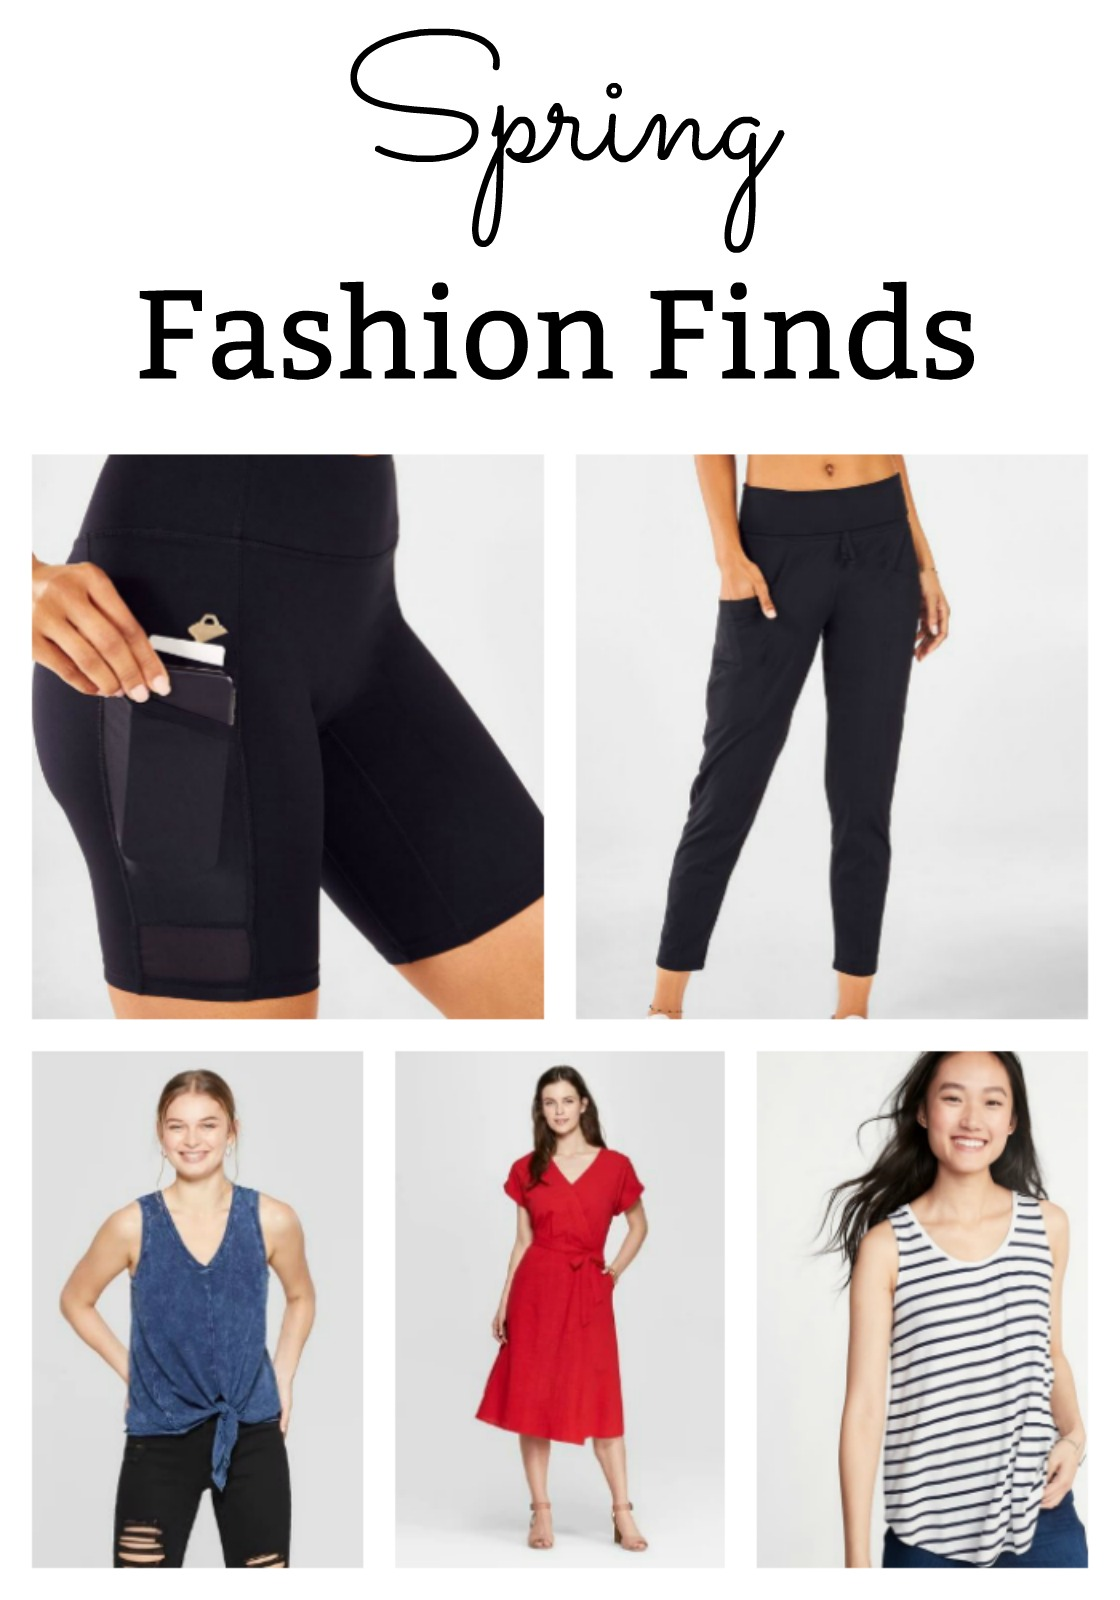 Spring Fashion Finds